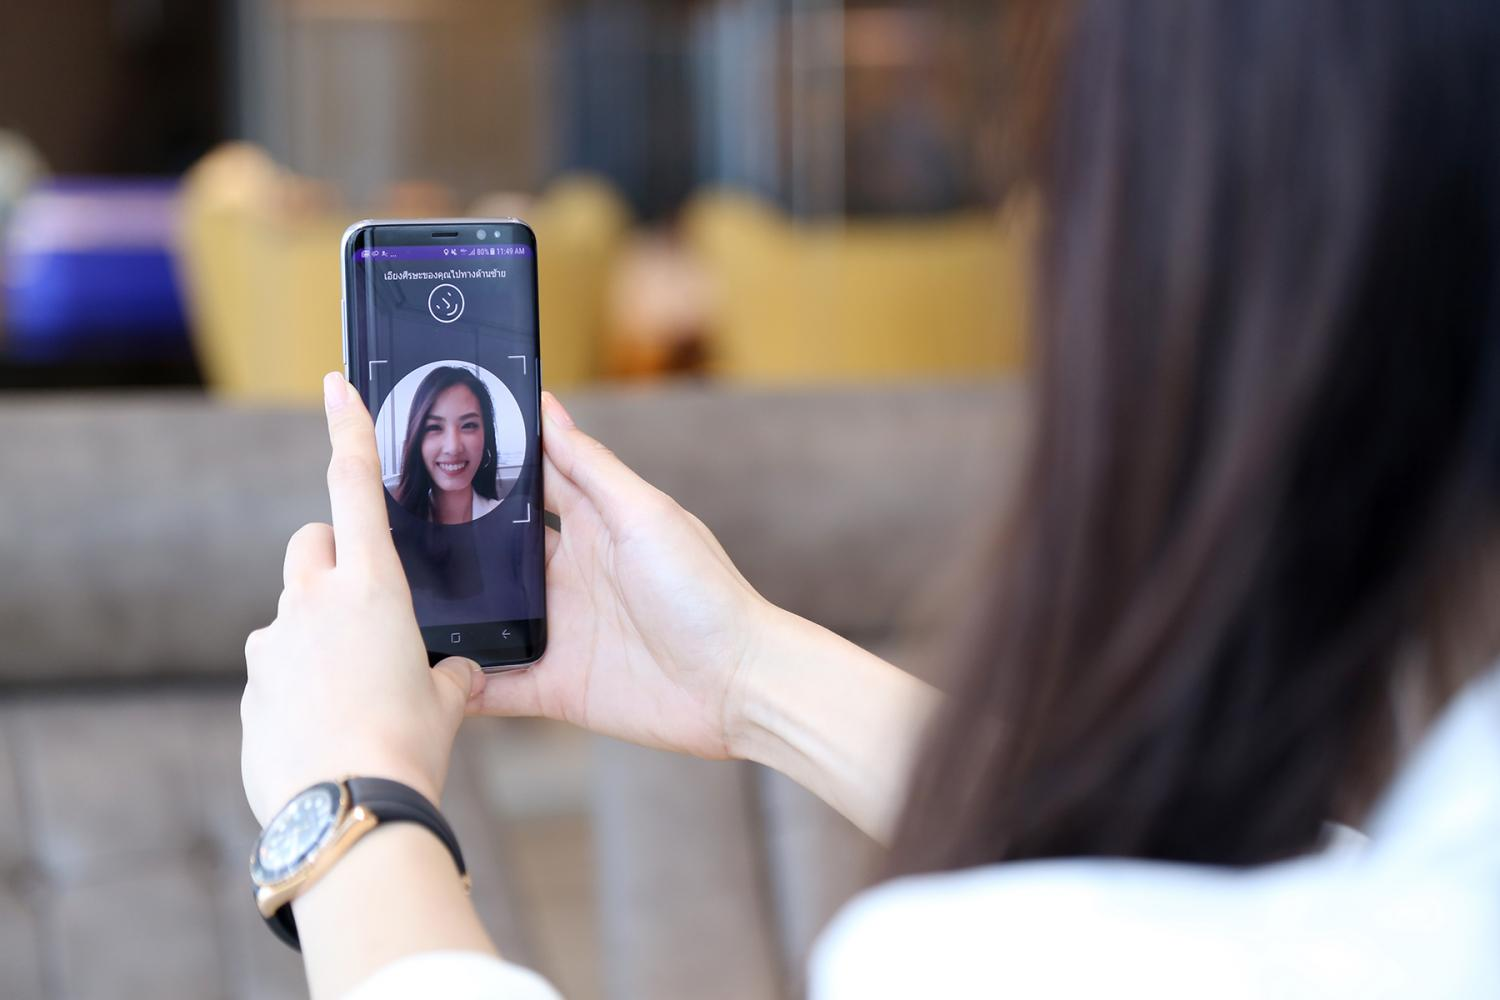 The SCB Easy mobile app features e-KYC, enabling customers to open accounts using facial recognition.